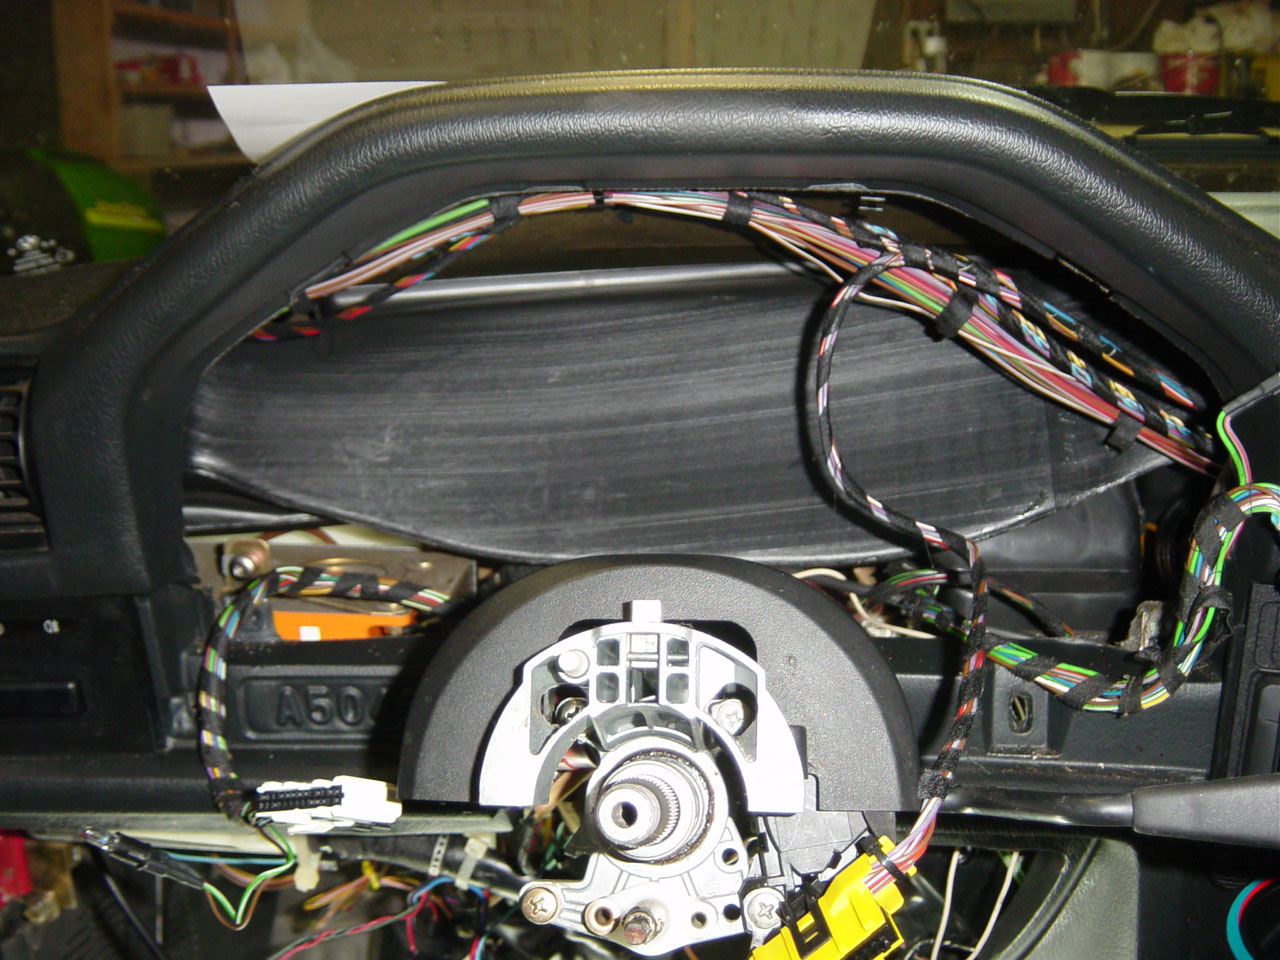 1991 Bmw 318i E30 M42 On Board Computer Obc Retrofit By Michael Wire Harness This Is Your Mini Wiring You Can Trace It Both Ways To Go The And Door Chime